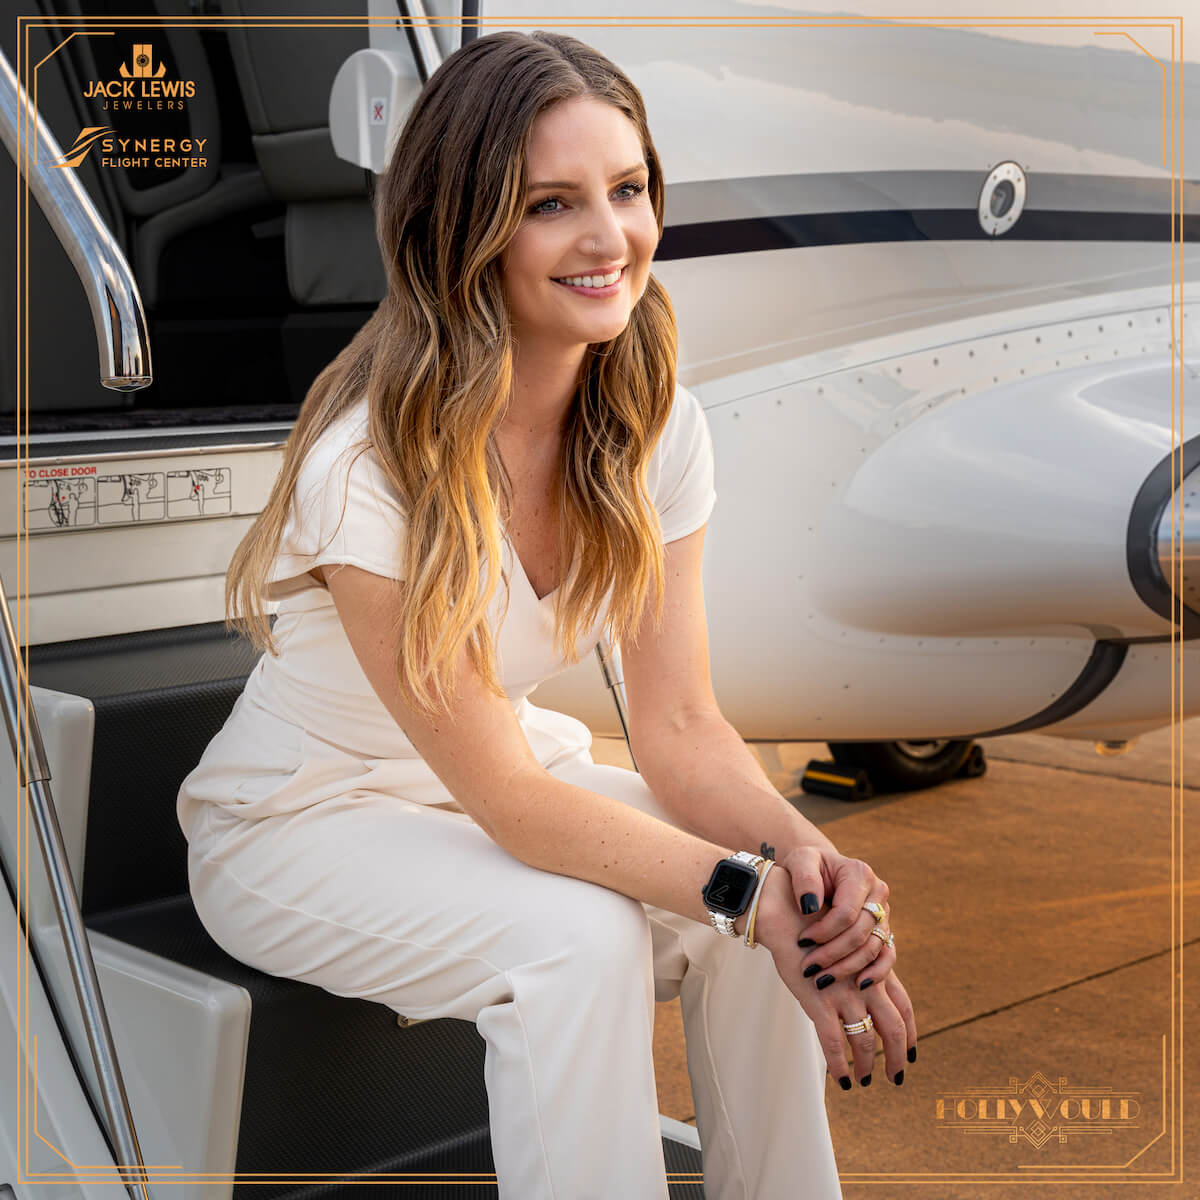 Young woman with long brown hair wearing a white pantsuit, and sitting on airplane steps with the sunsetting behind her. She is wearing a bracelet, earrings and rings from the brand Lagos and their caviar collection.